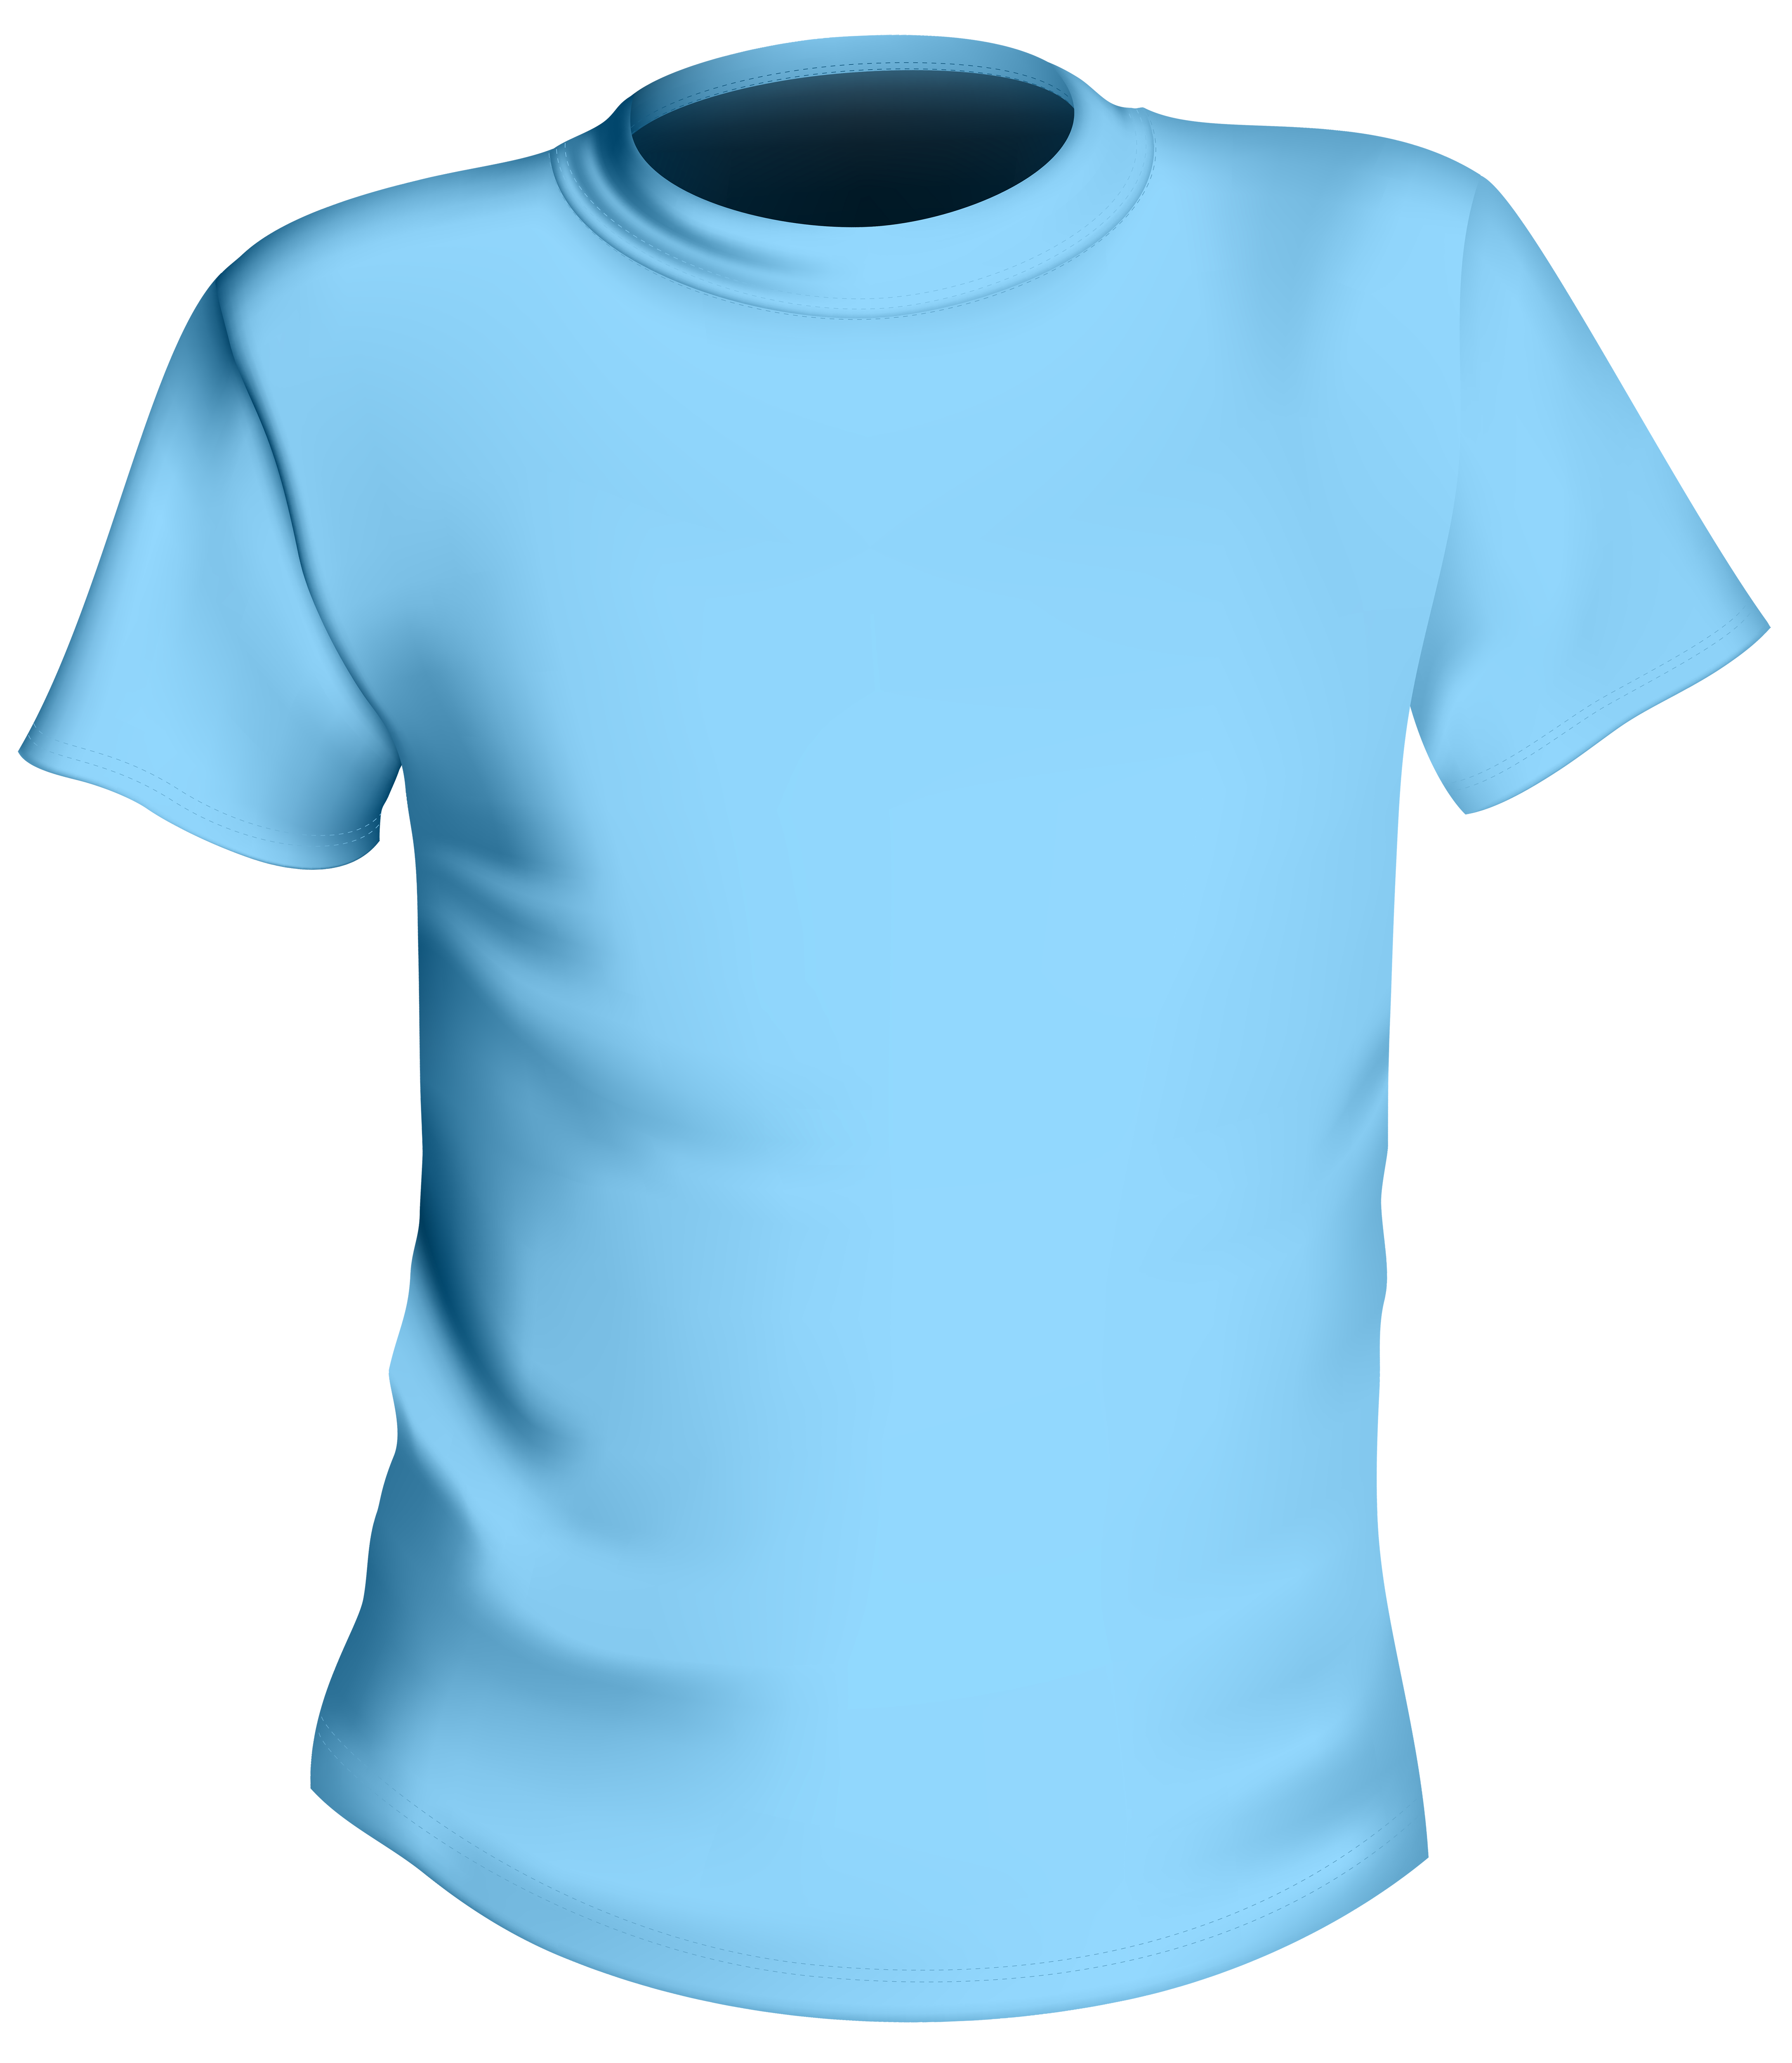 Blue male shirt png. Cleaning clipart washed clothes